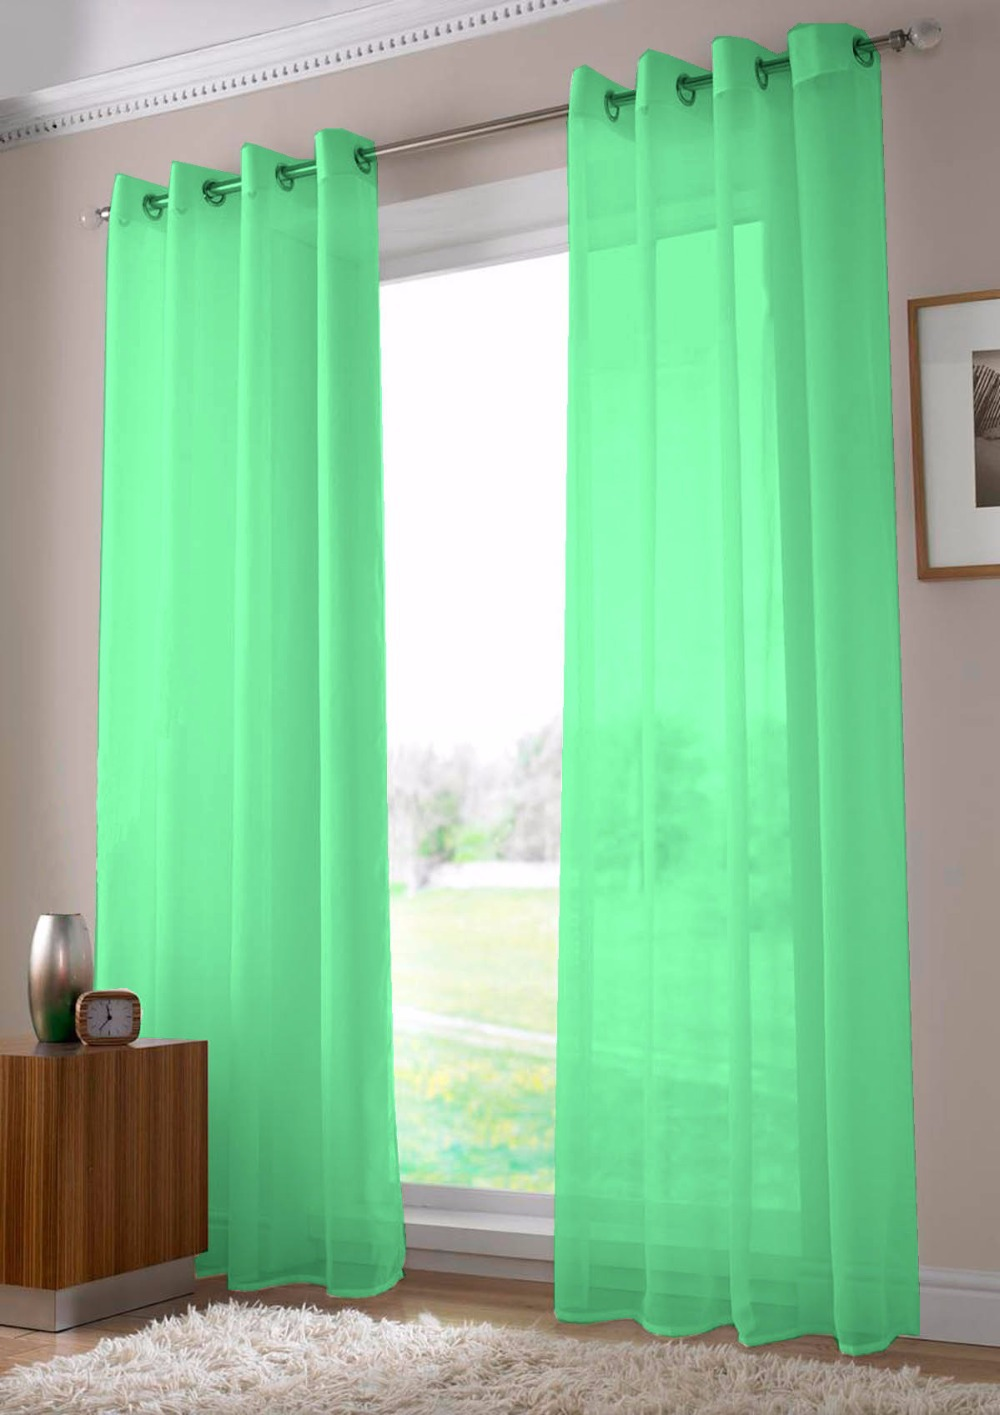 Teal Blur Sheer Curtains Living Room Decorations: Two Panels Green Tube Curtains For Living Room Light